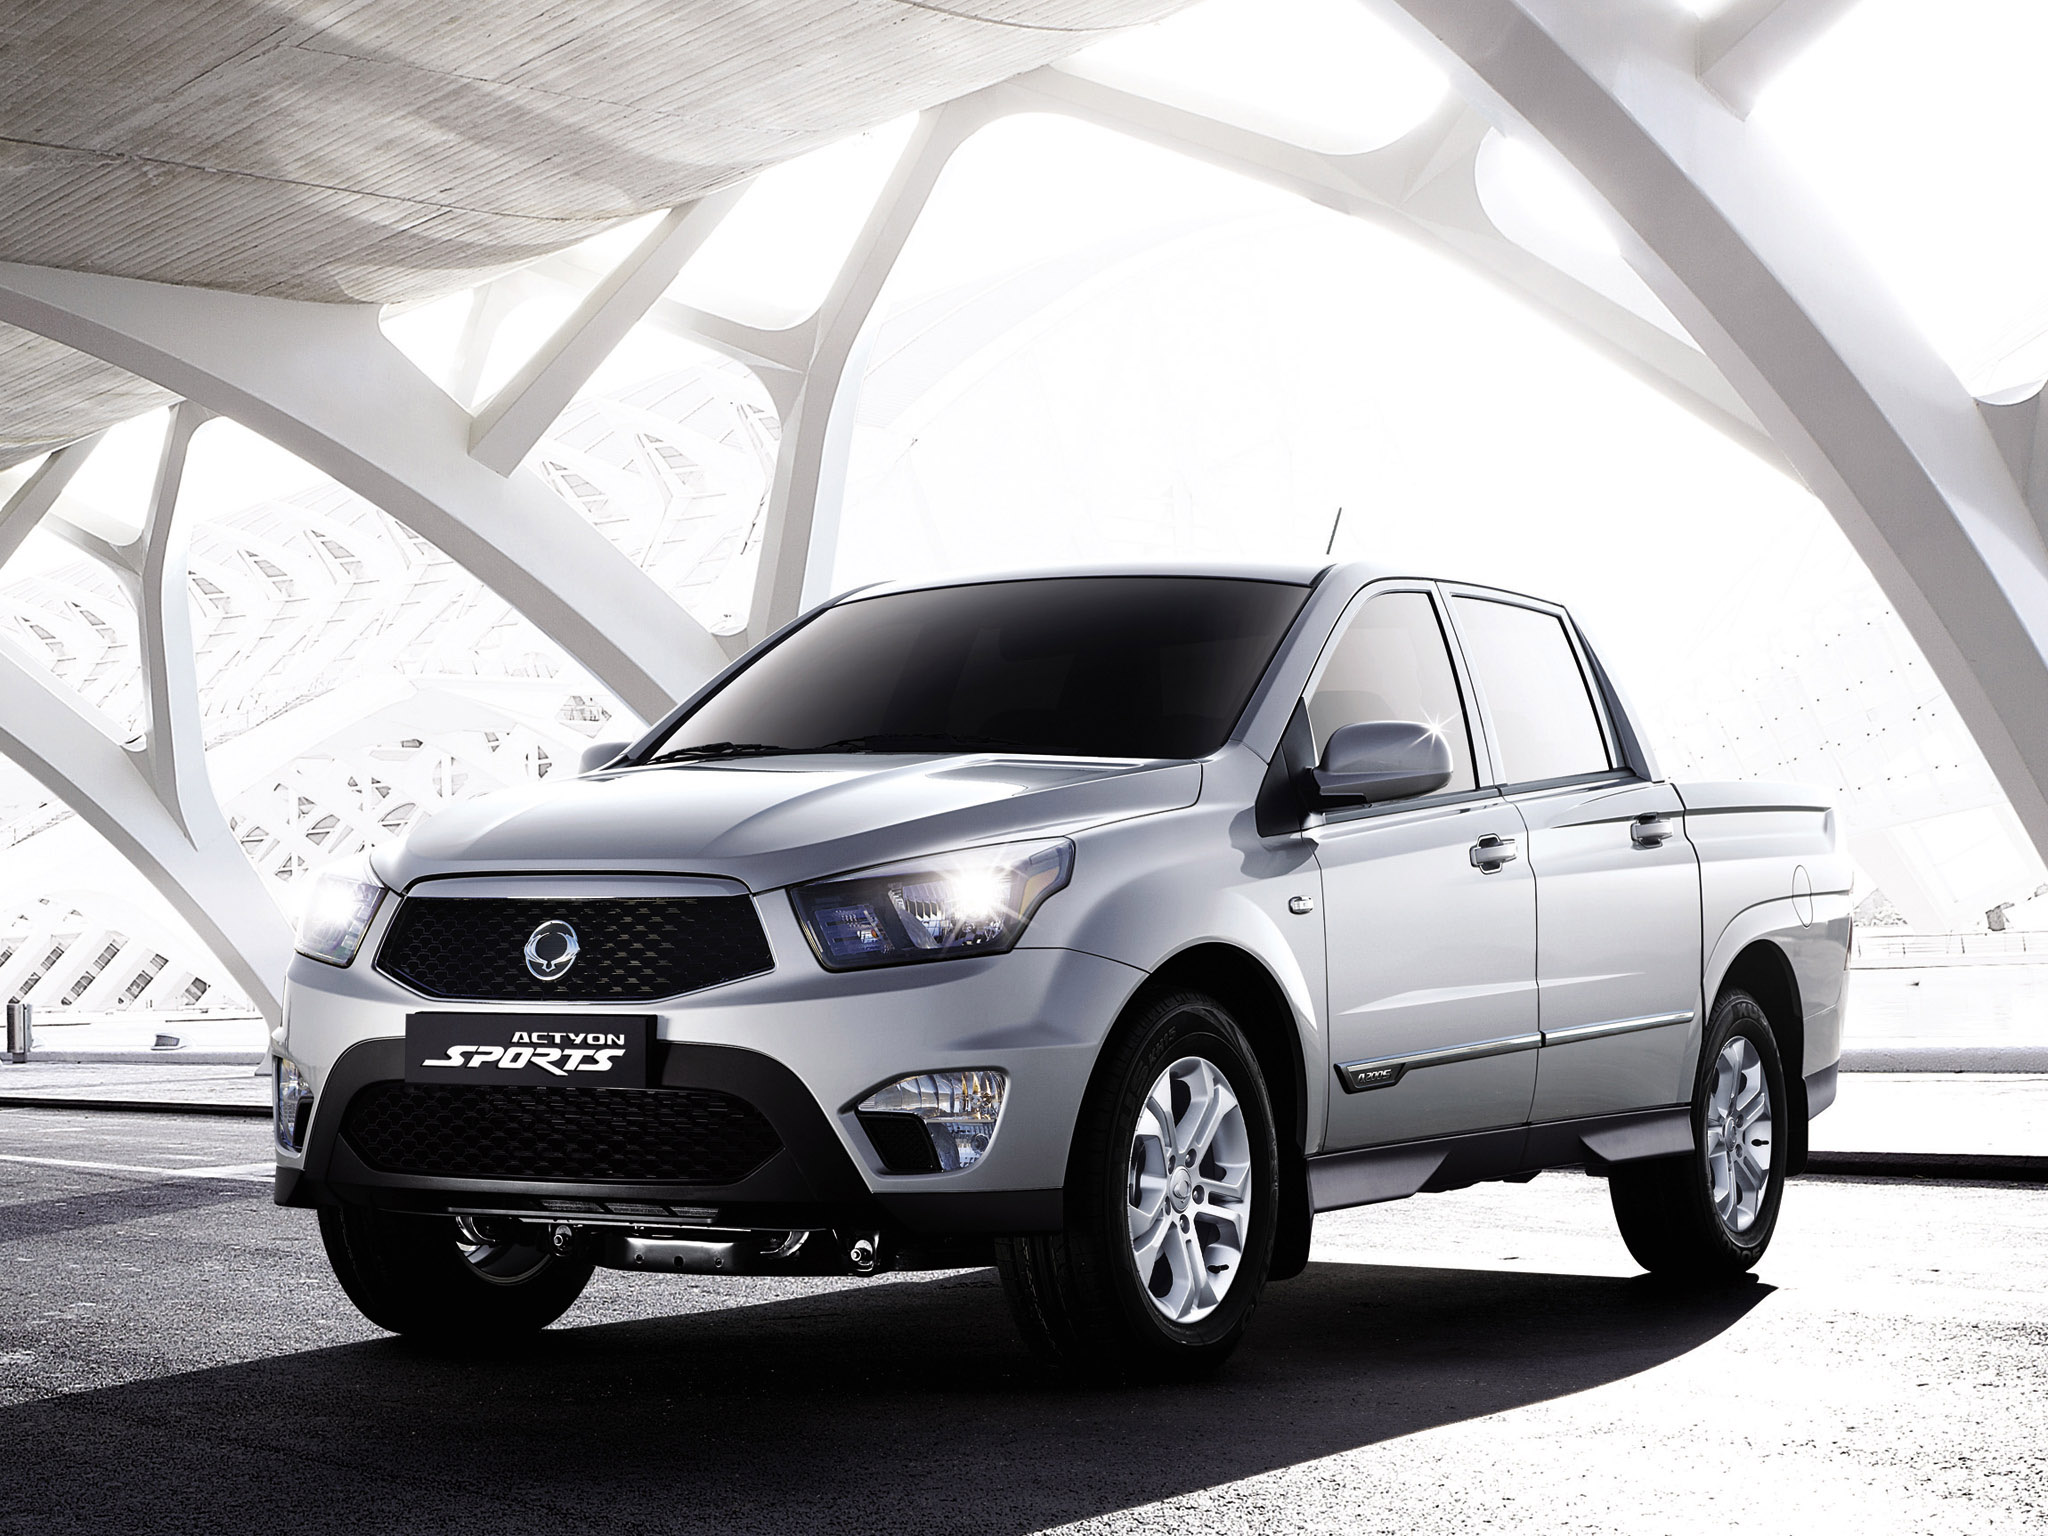 2012 SsangYong Ssangyong Actyon Sports Pick-up 4-door